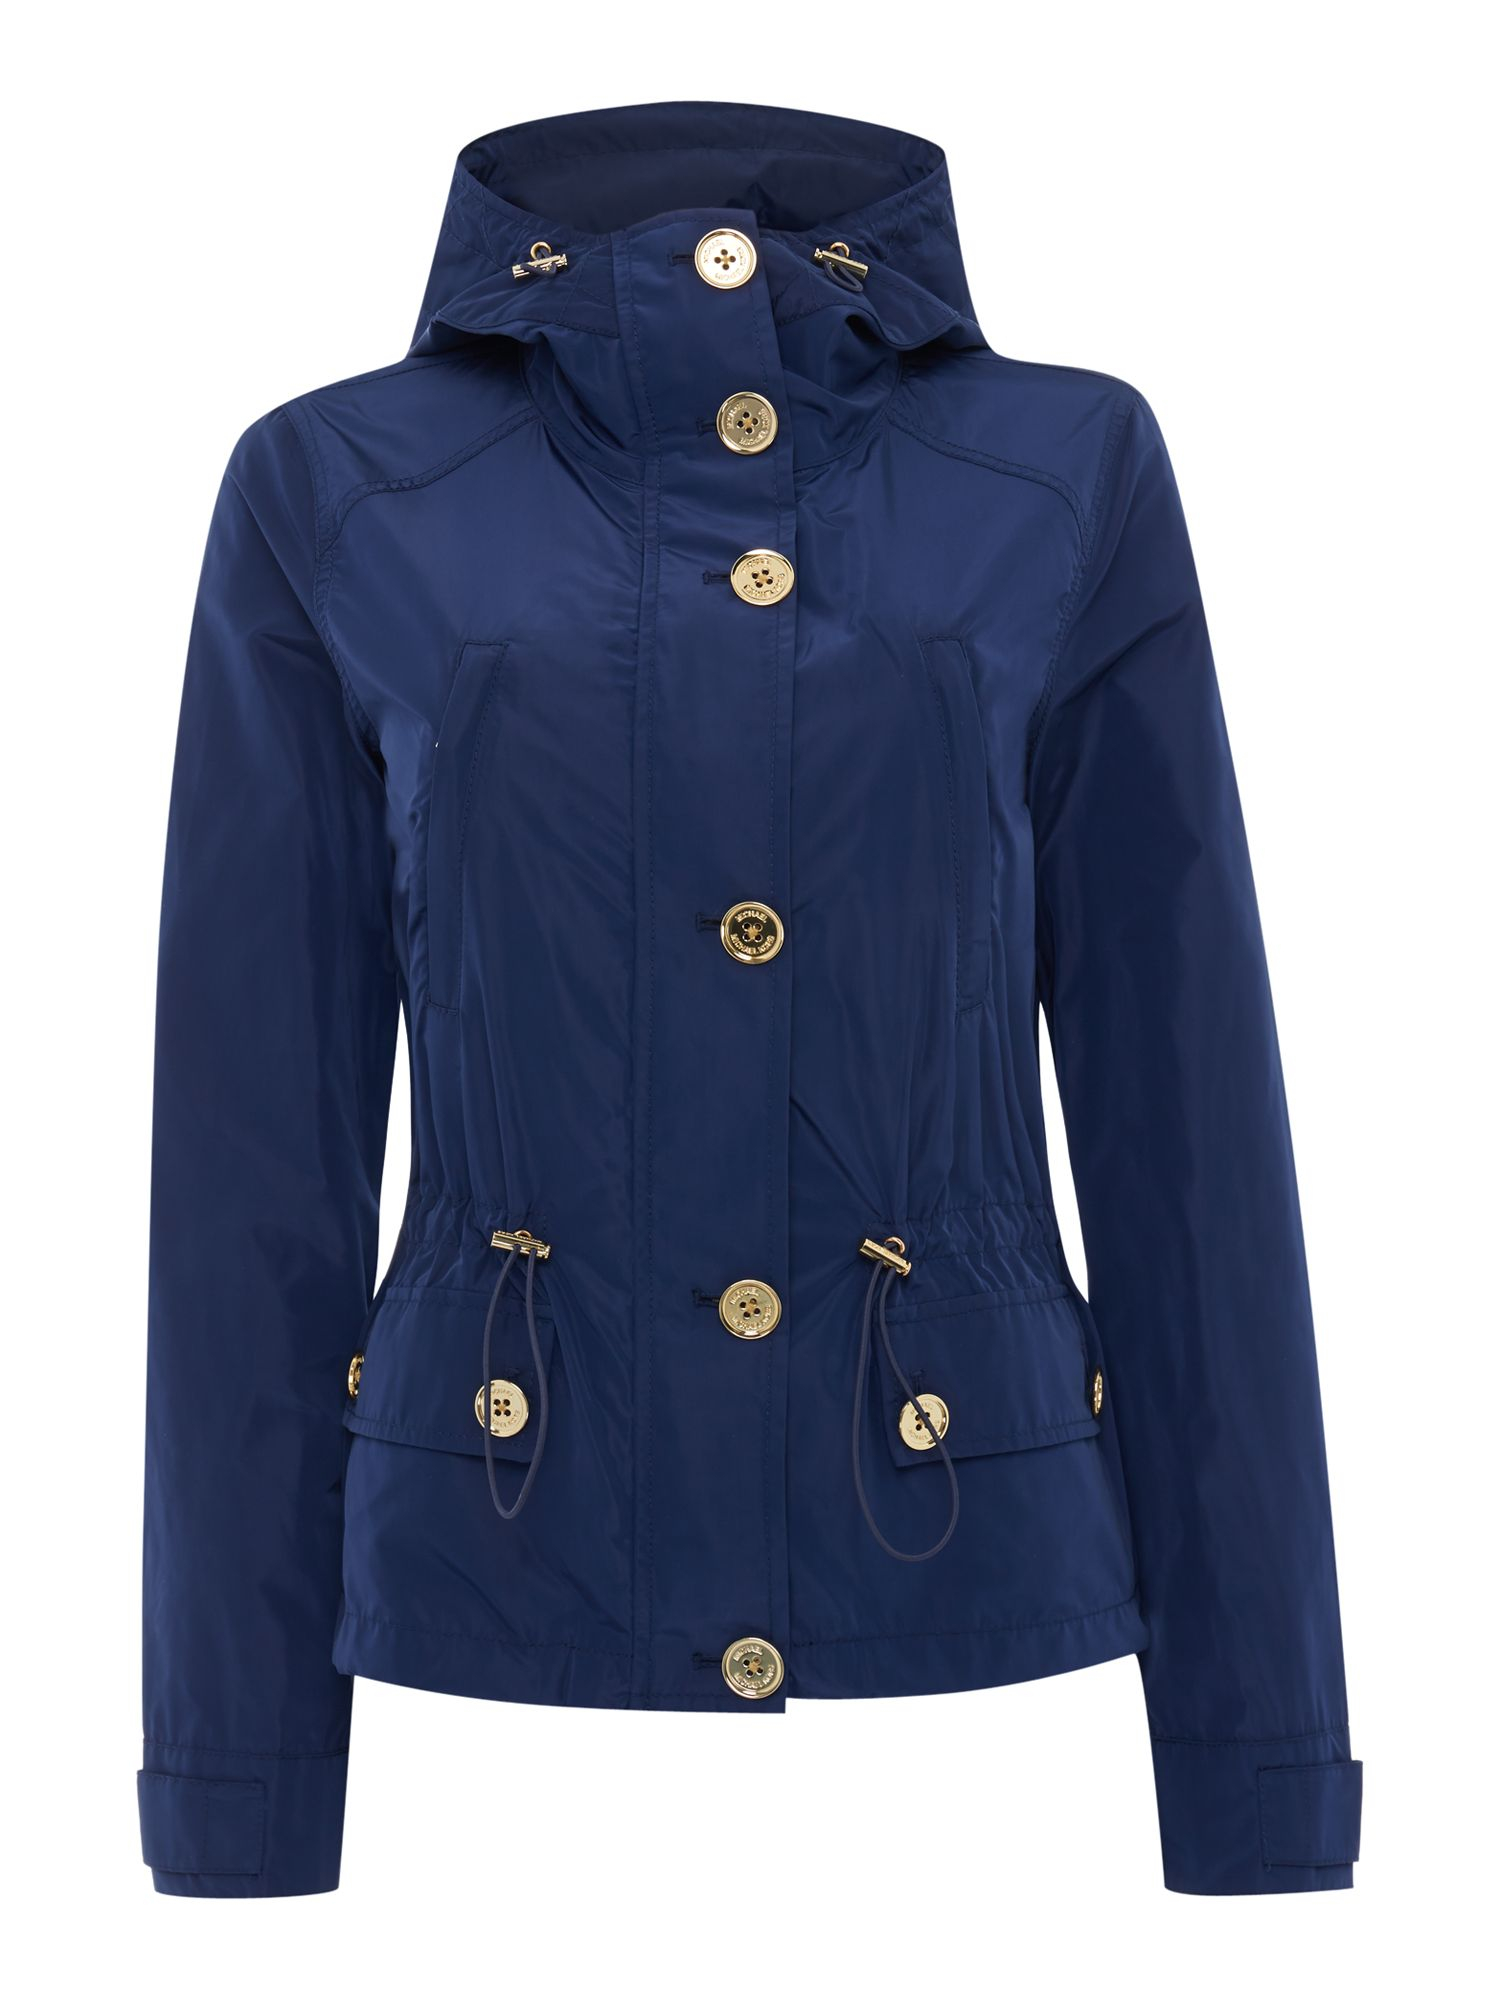 Michael Kors Short Parka Jacket With Gold Buttons In Blue